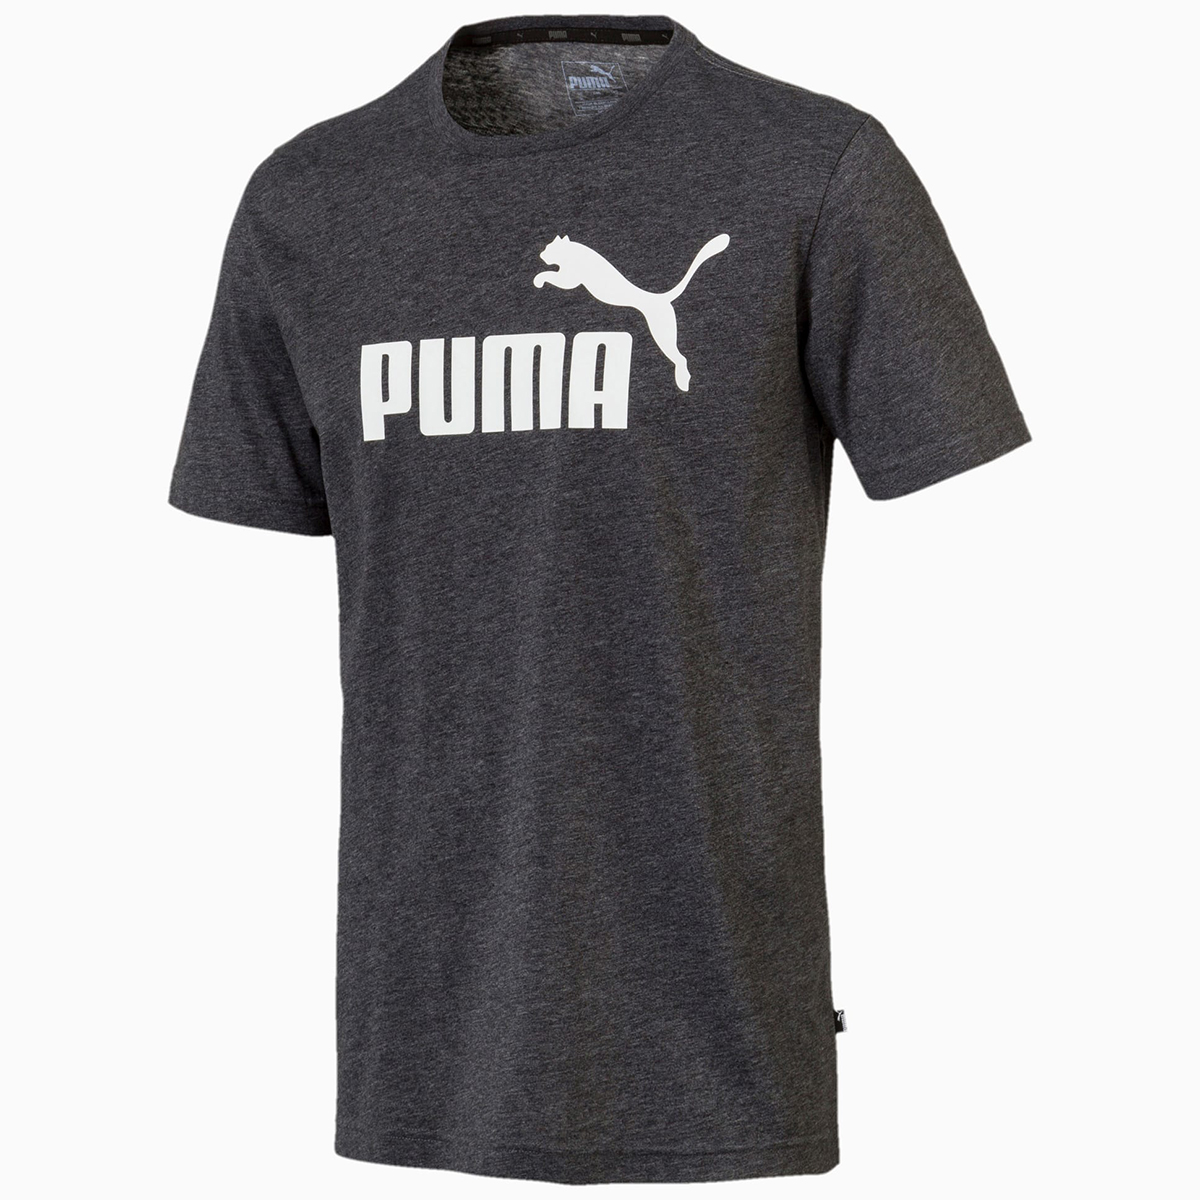 Puma Men's Essentials Short-Sleeve Tee - Black, XXL